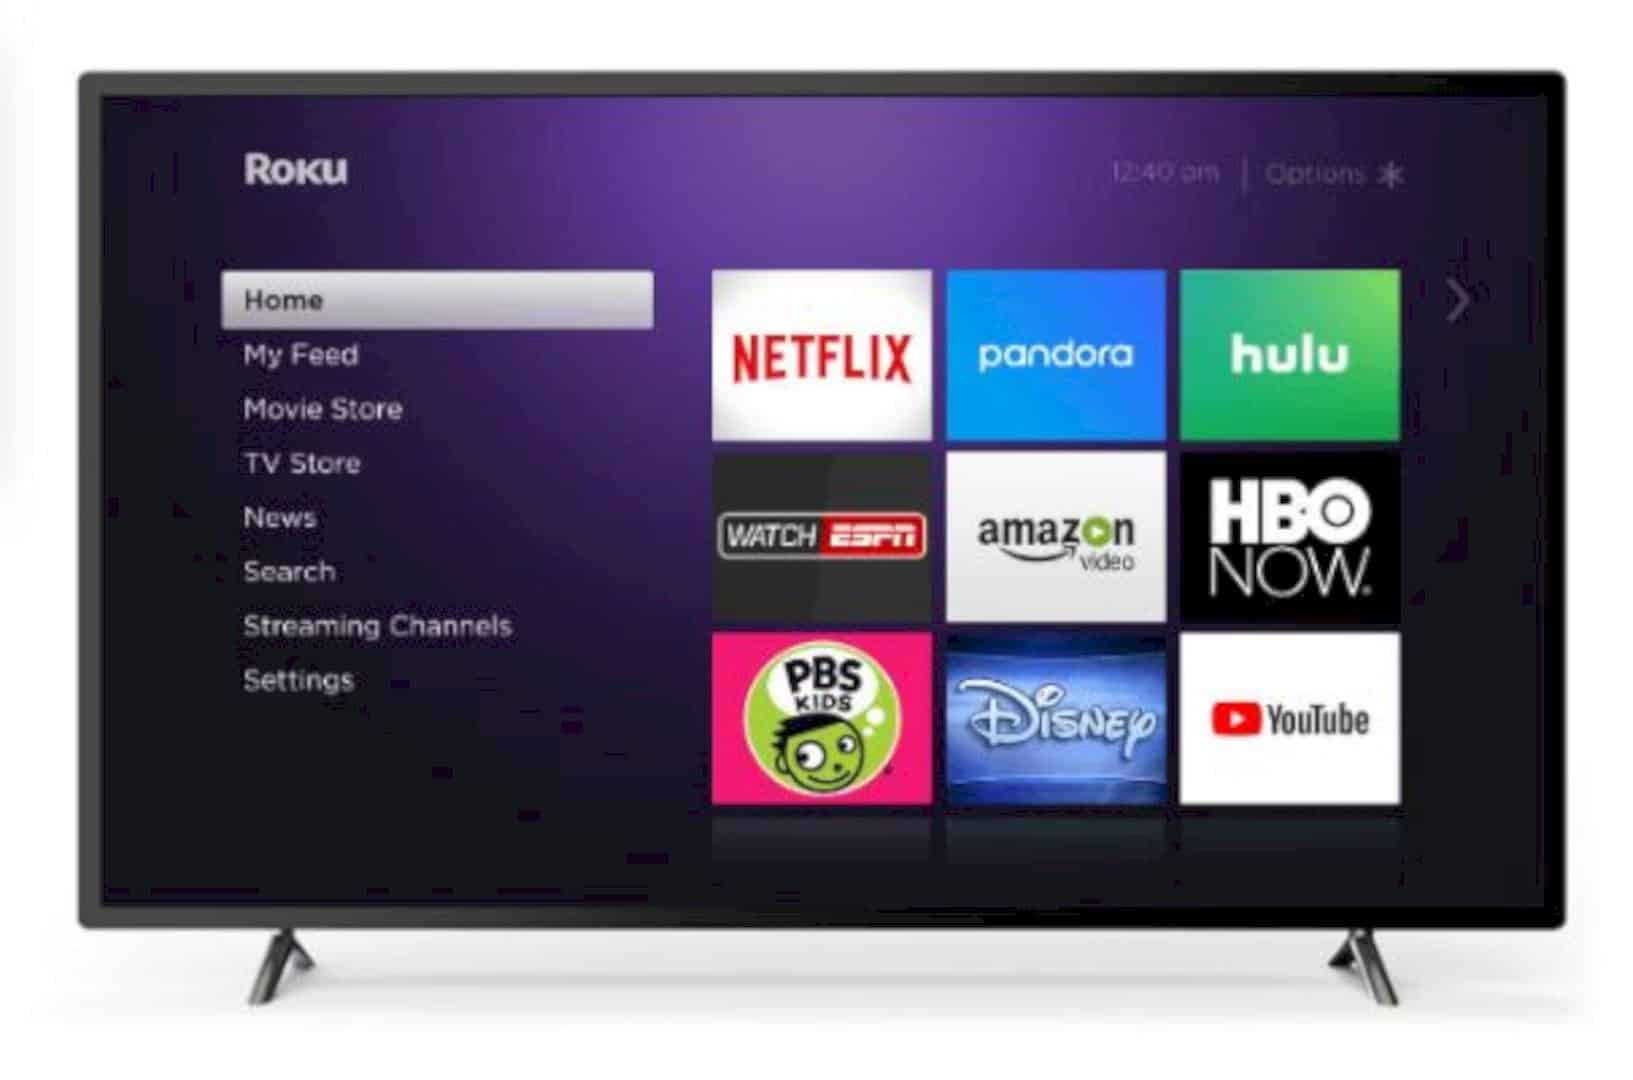 Roku Streaming Stick 7